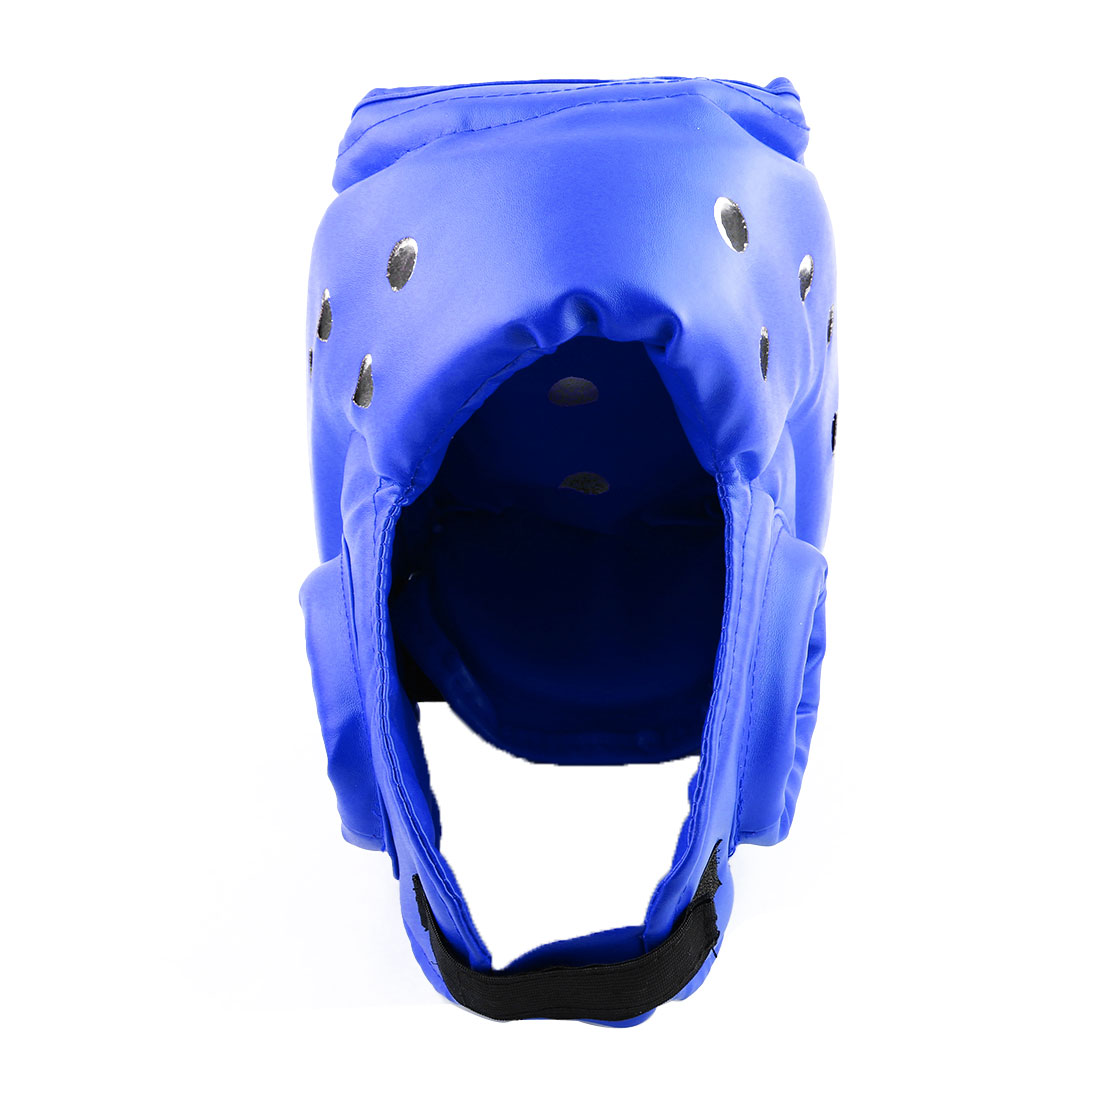 Kickboxing Sparring Head Brace Punching Protector Boxing Gear Helmet Blue Size S